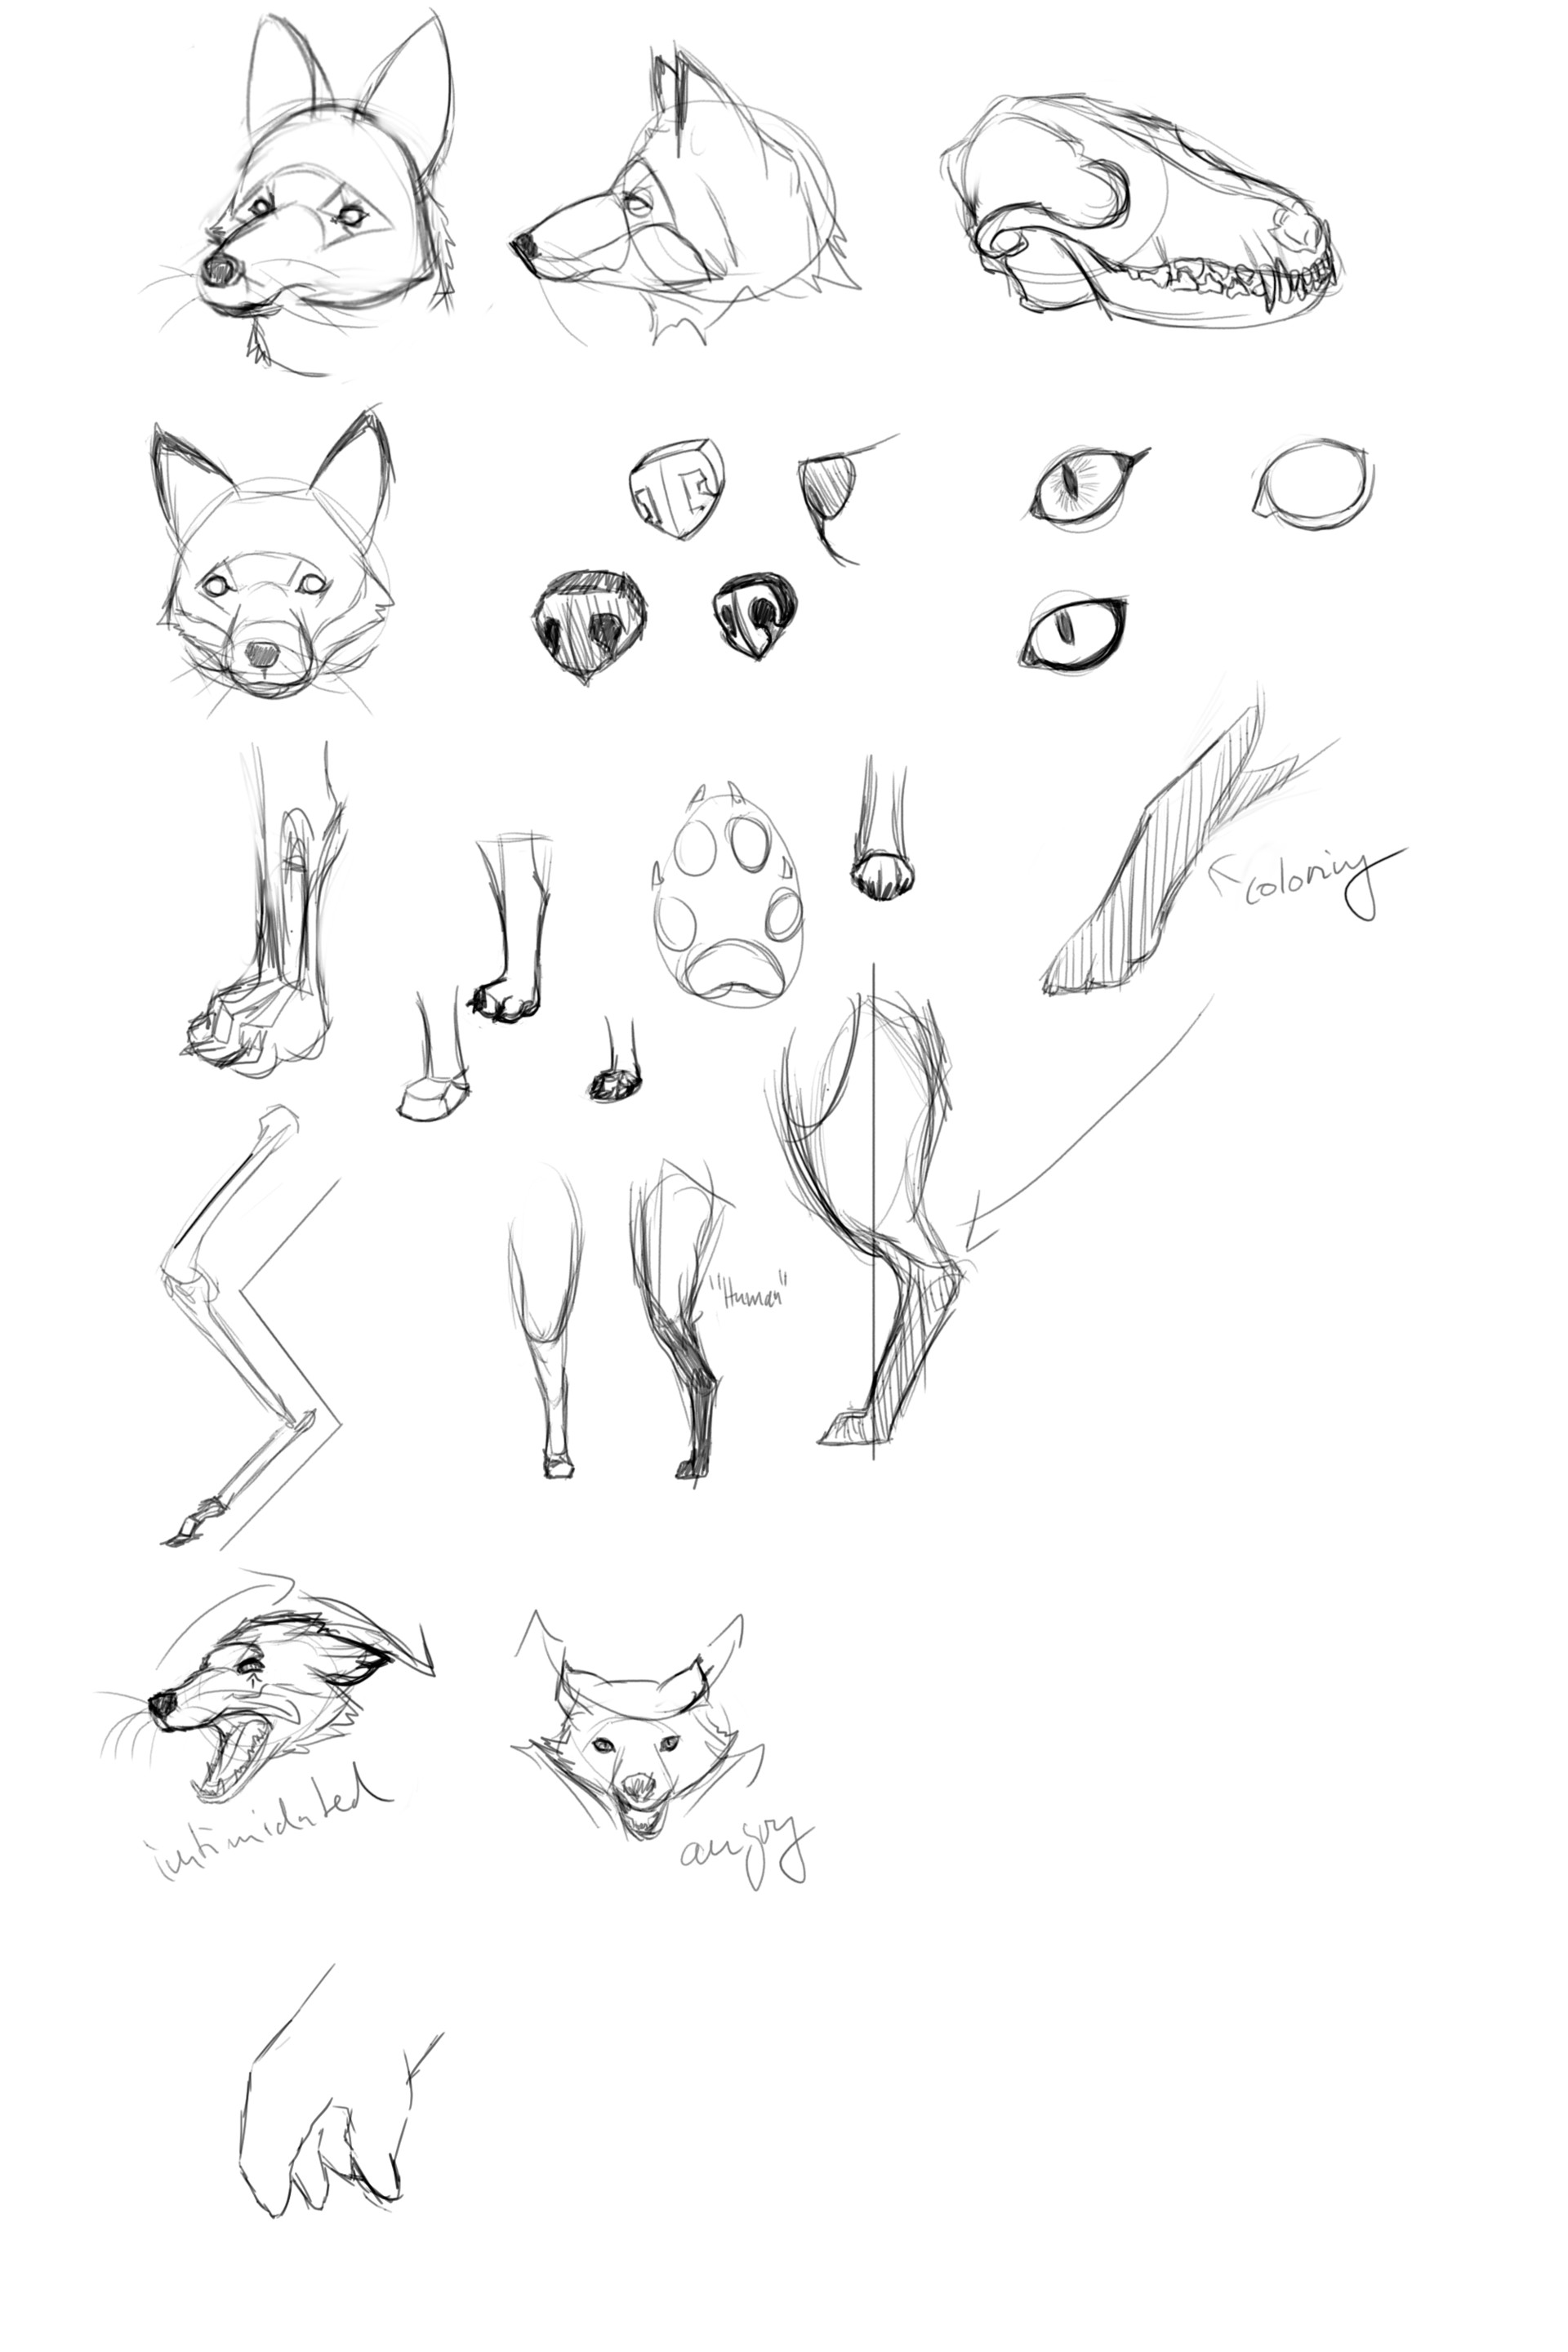 One of the cleaner examples of me tackling fox anatomy.